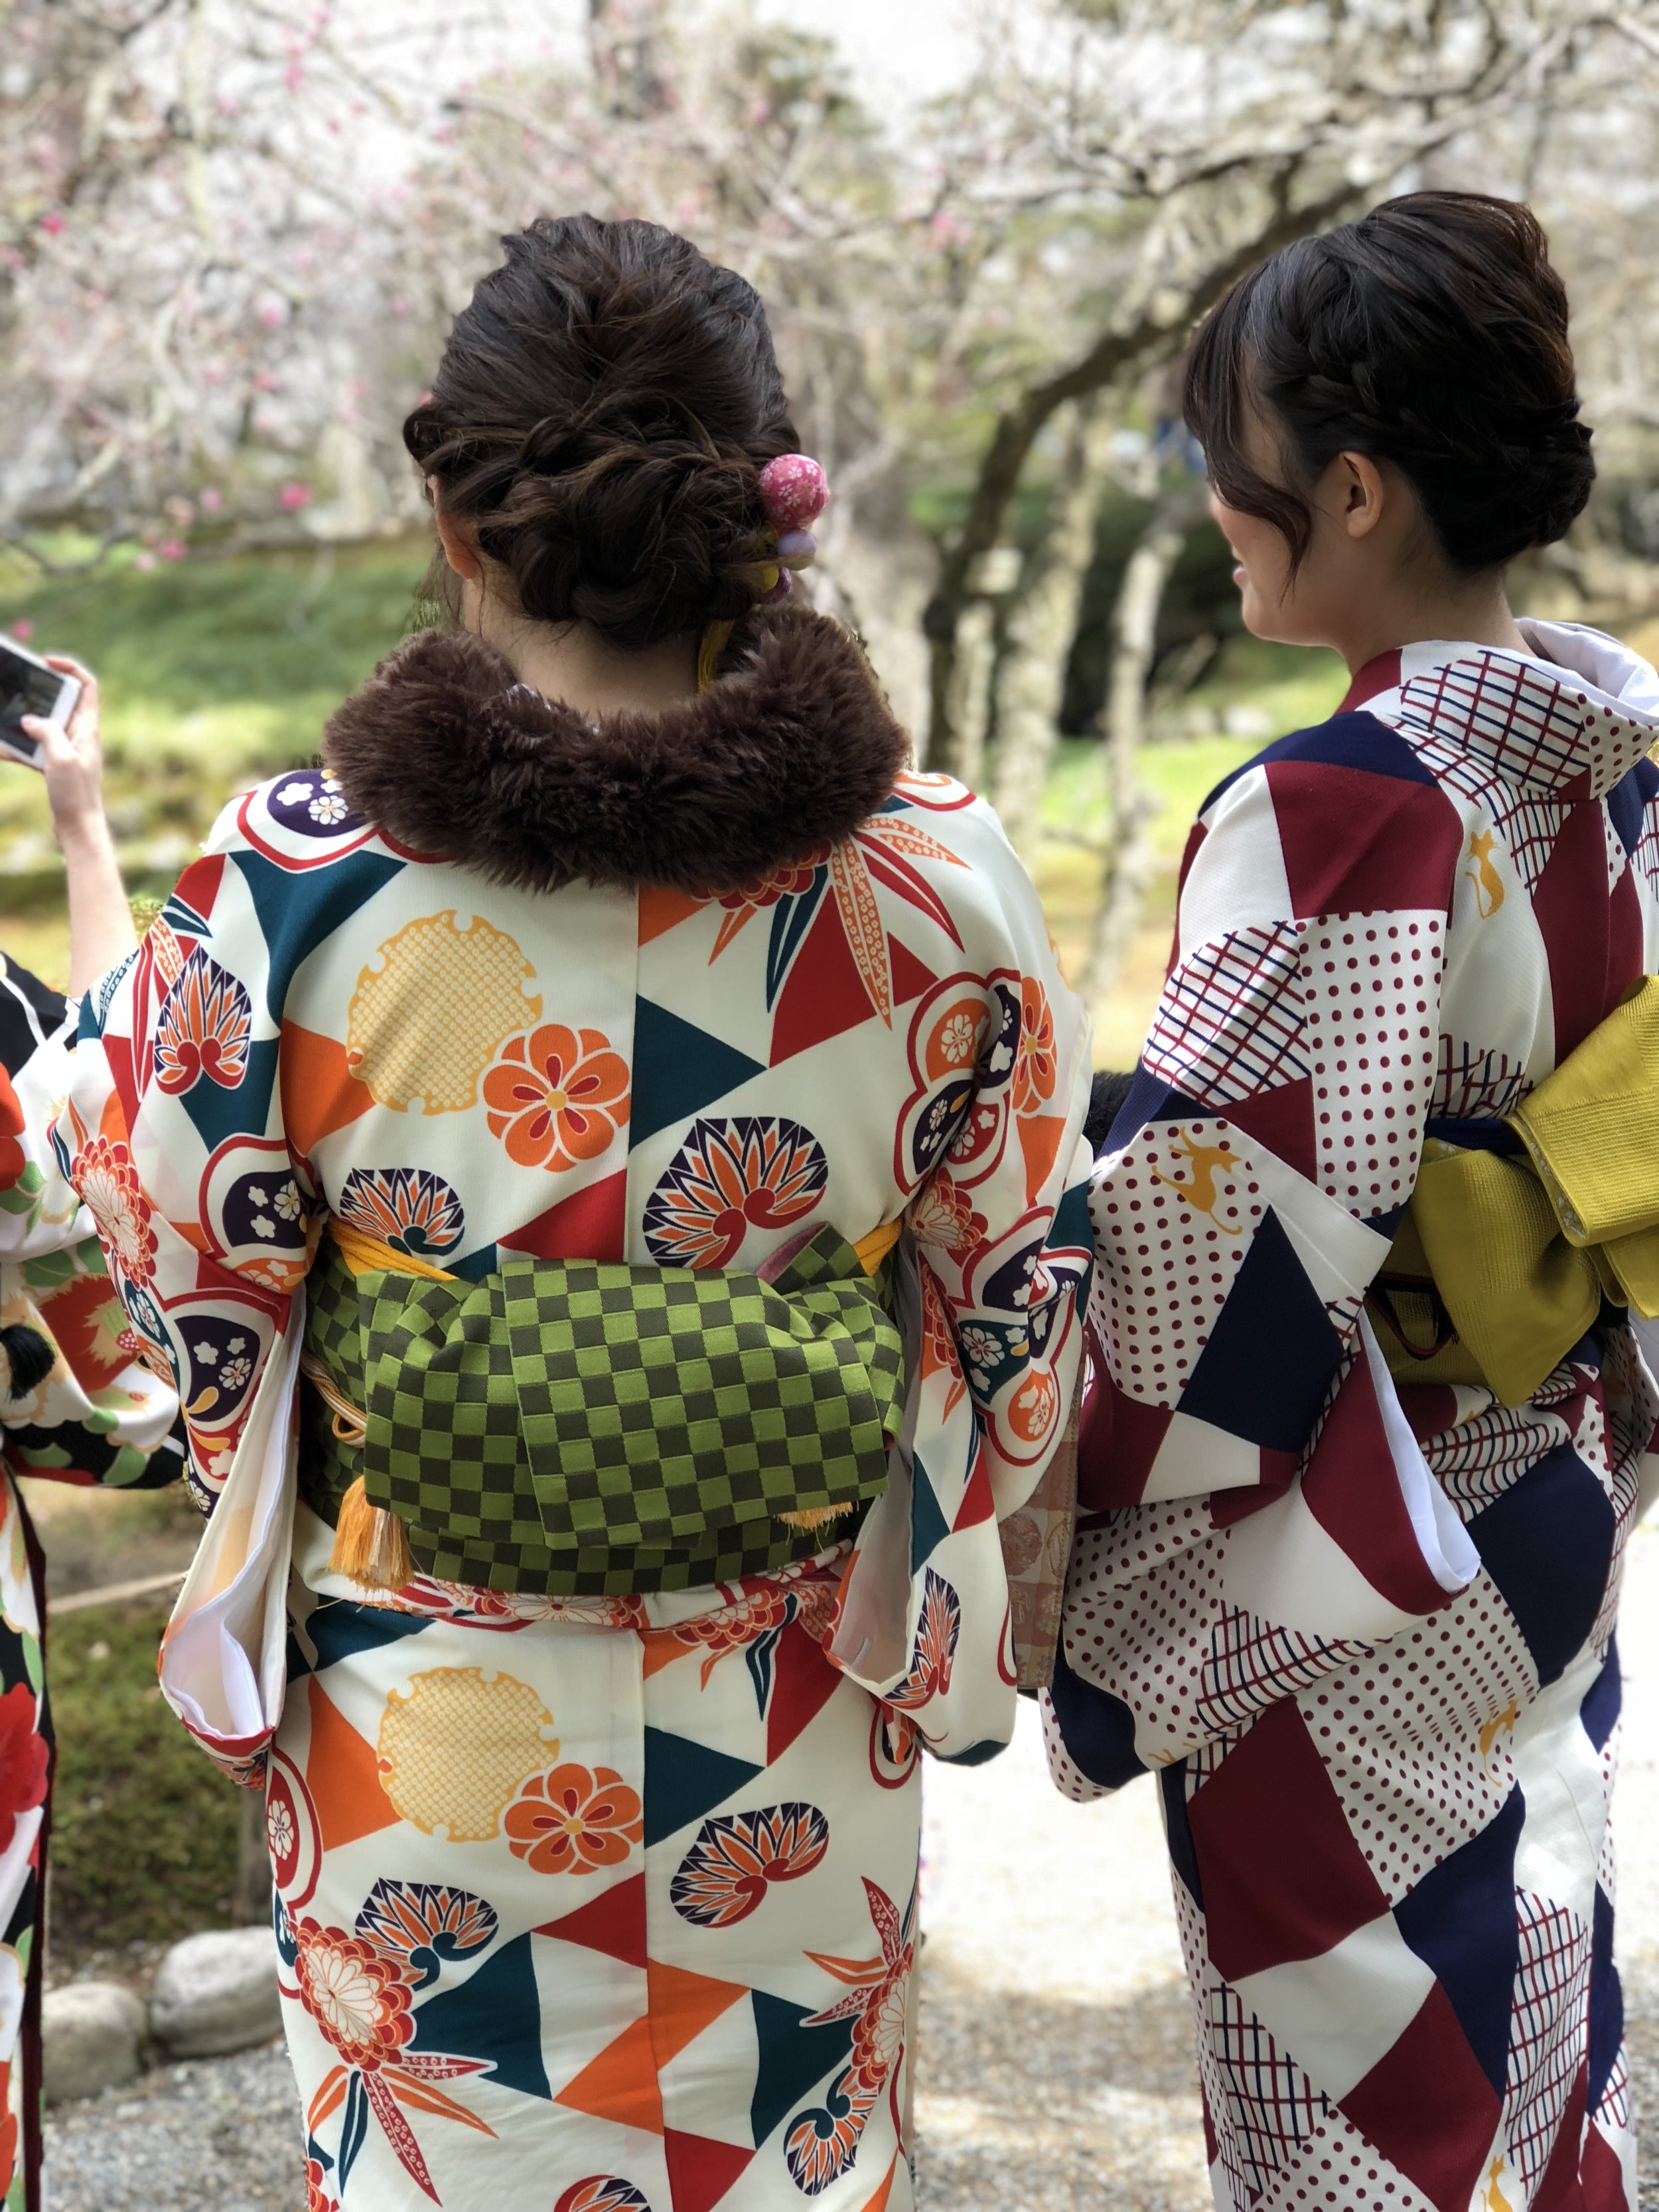 A chilly, early spring morning in Kanazawa. These young women wear a thermal lining under their kimonos and little fur wraps around their necks to ward off the cold.